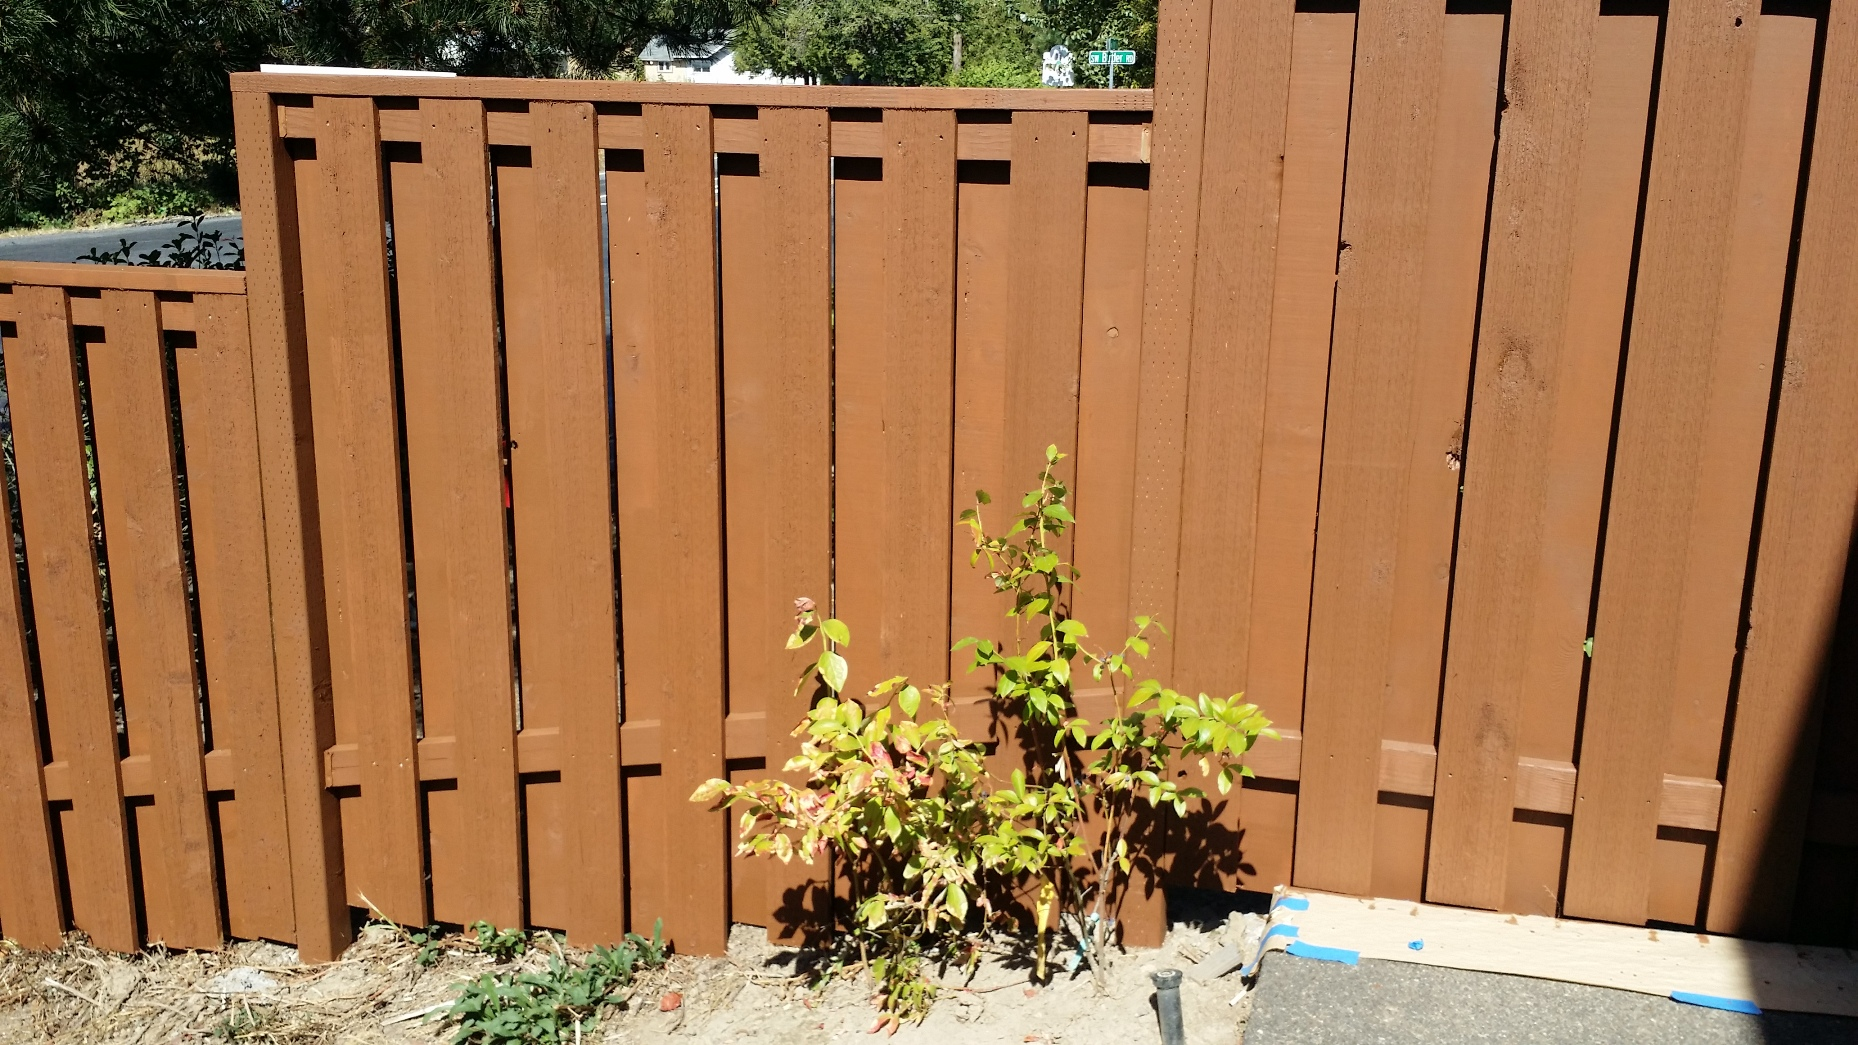 Chicago fence repair quote, Chicago fence contractor, Chicago fencing company, Fence Repair Chicago, Chicago fencing repair